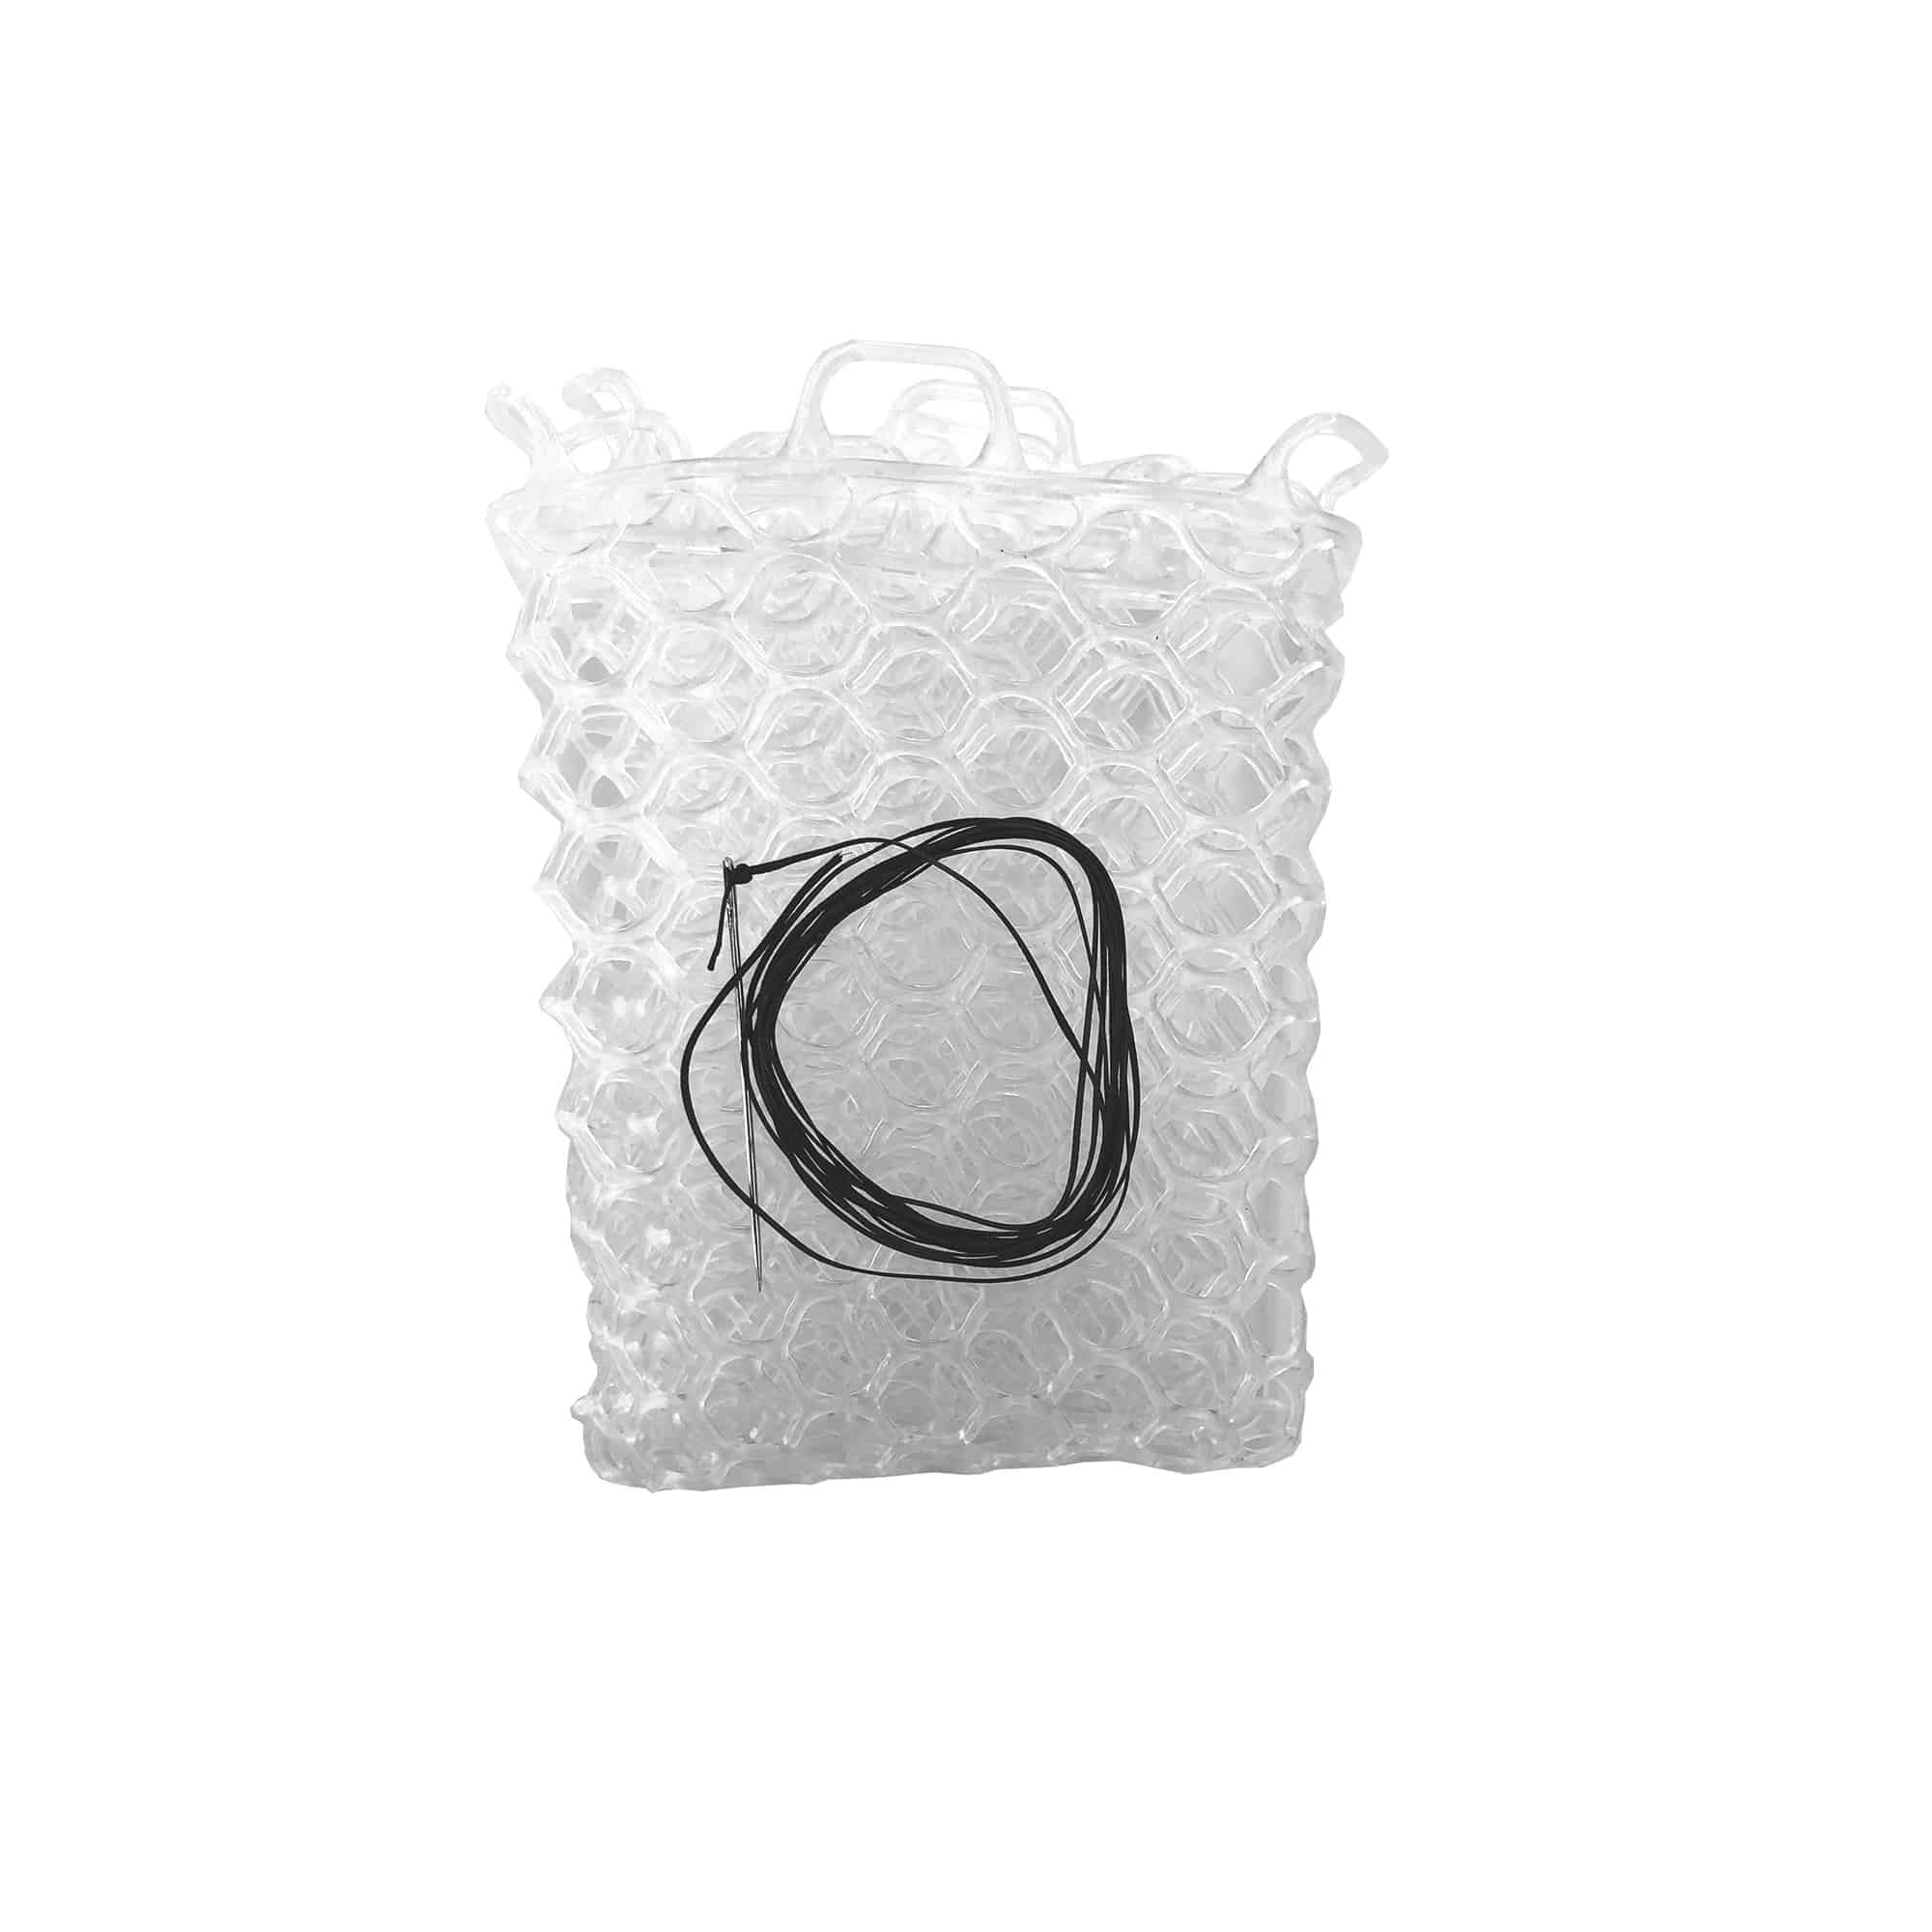 "Fishpond Nomad Native Net Replacement Rubber Net 12.5"" Clear"